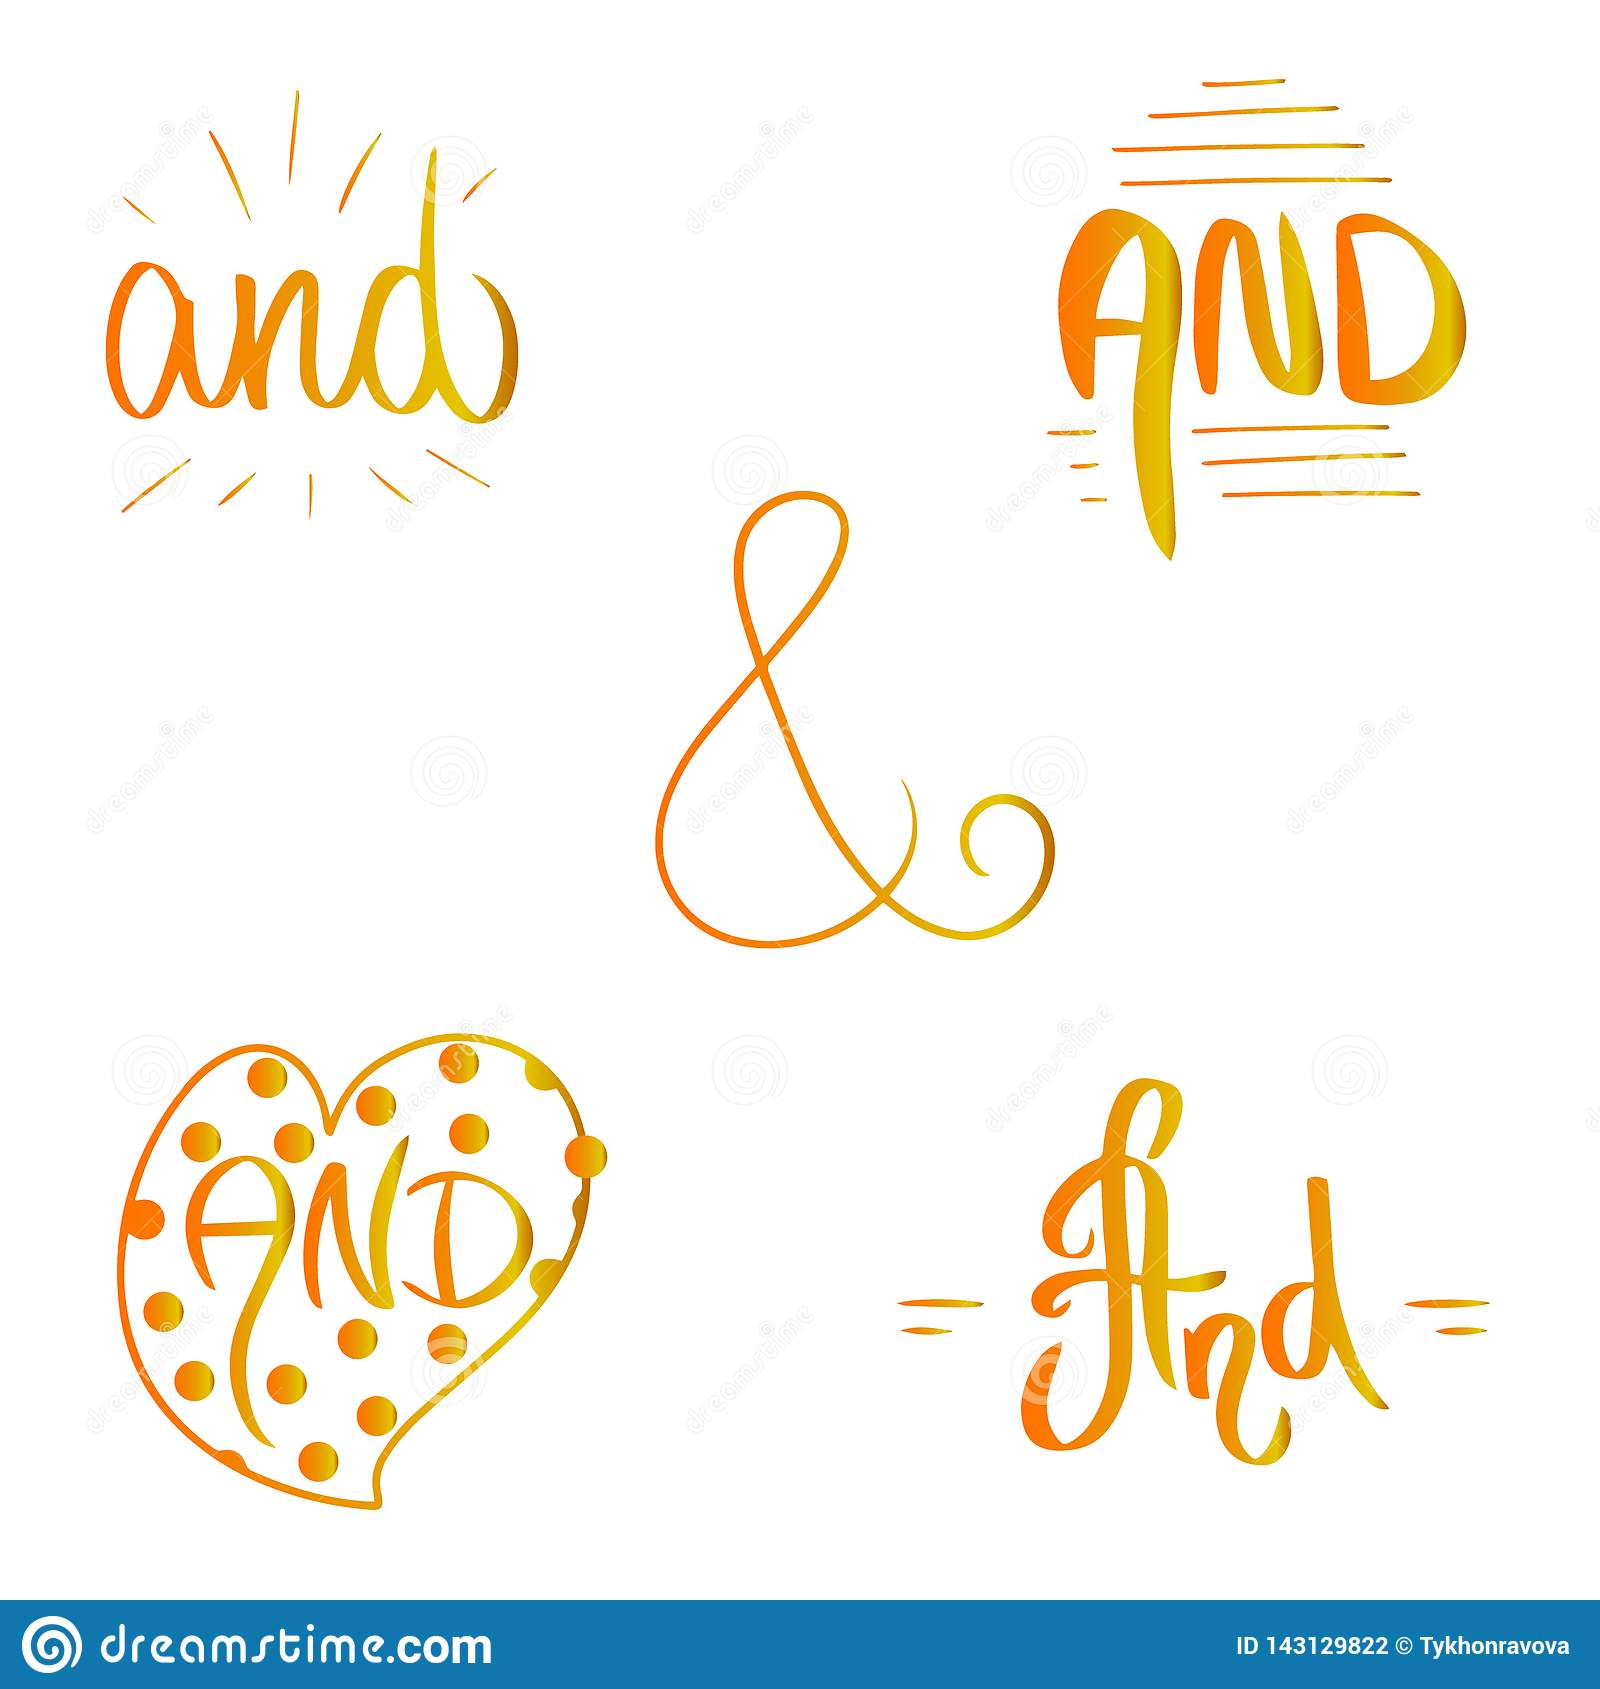 Orange yellow gradient Catch word And. Ampersand vector illustration hand drawn brush style in heart border and frames.